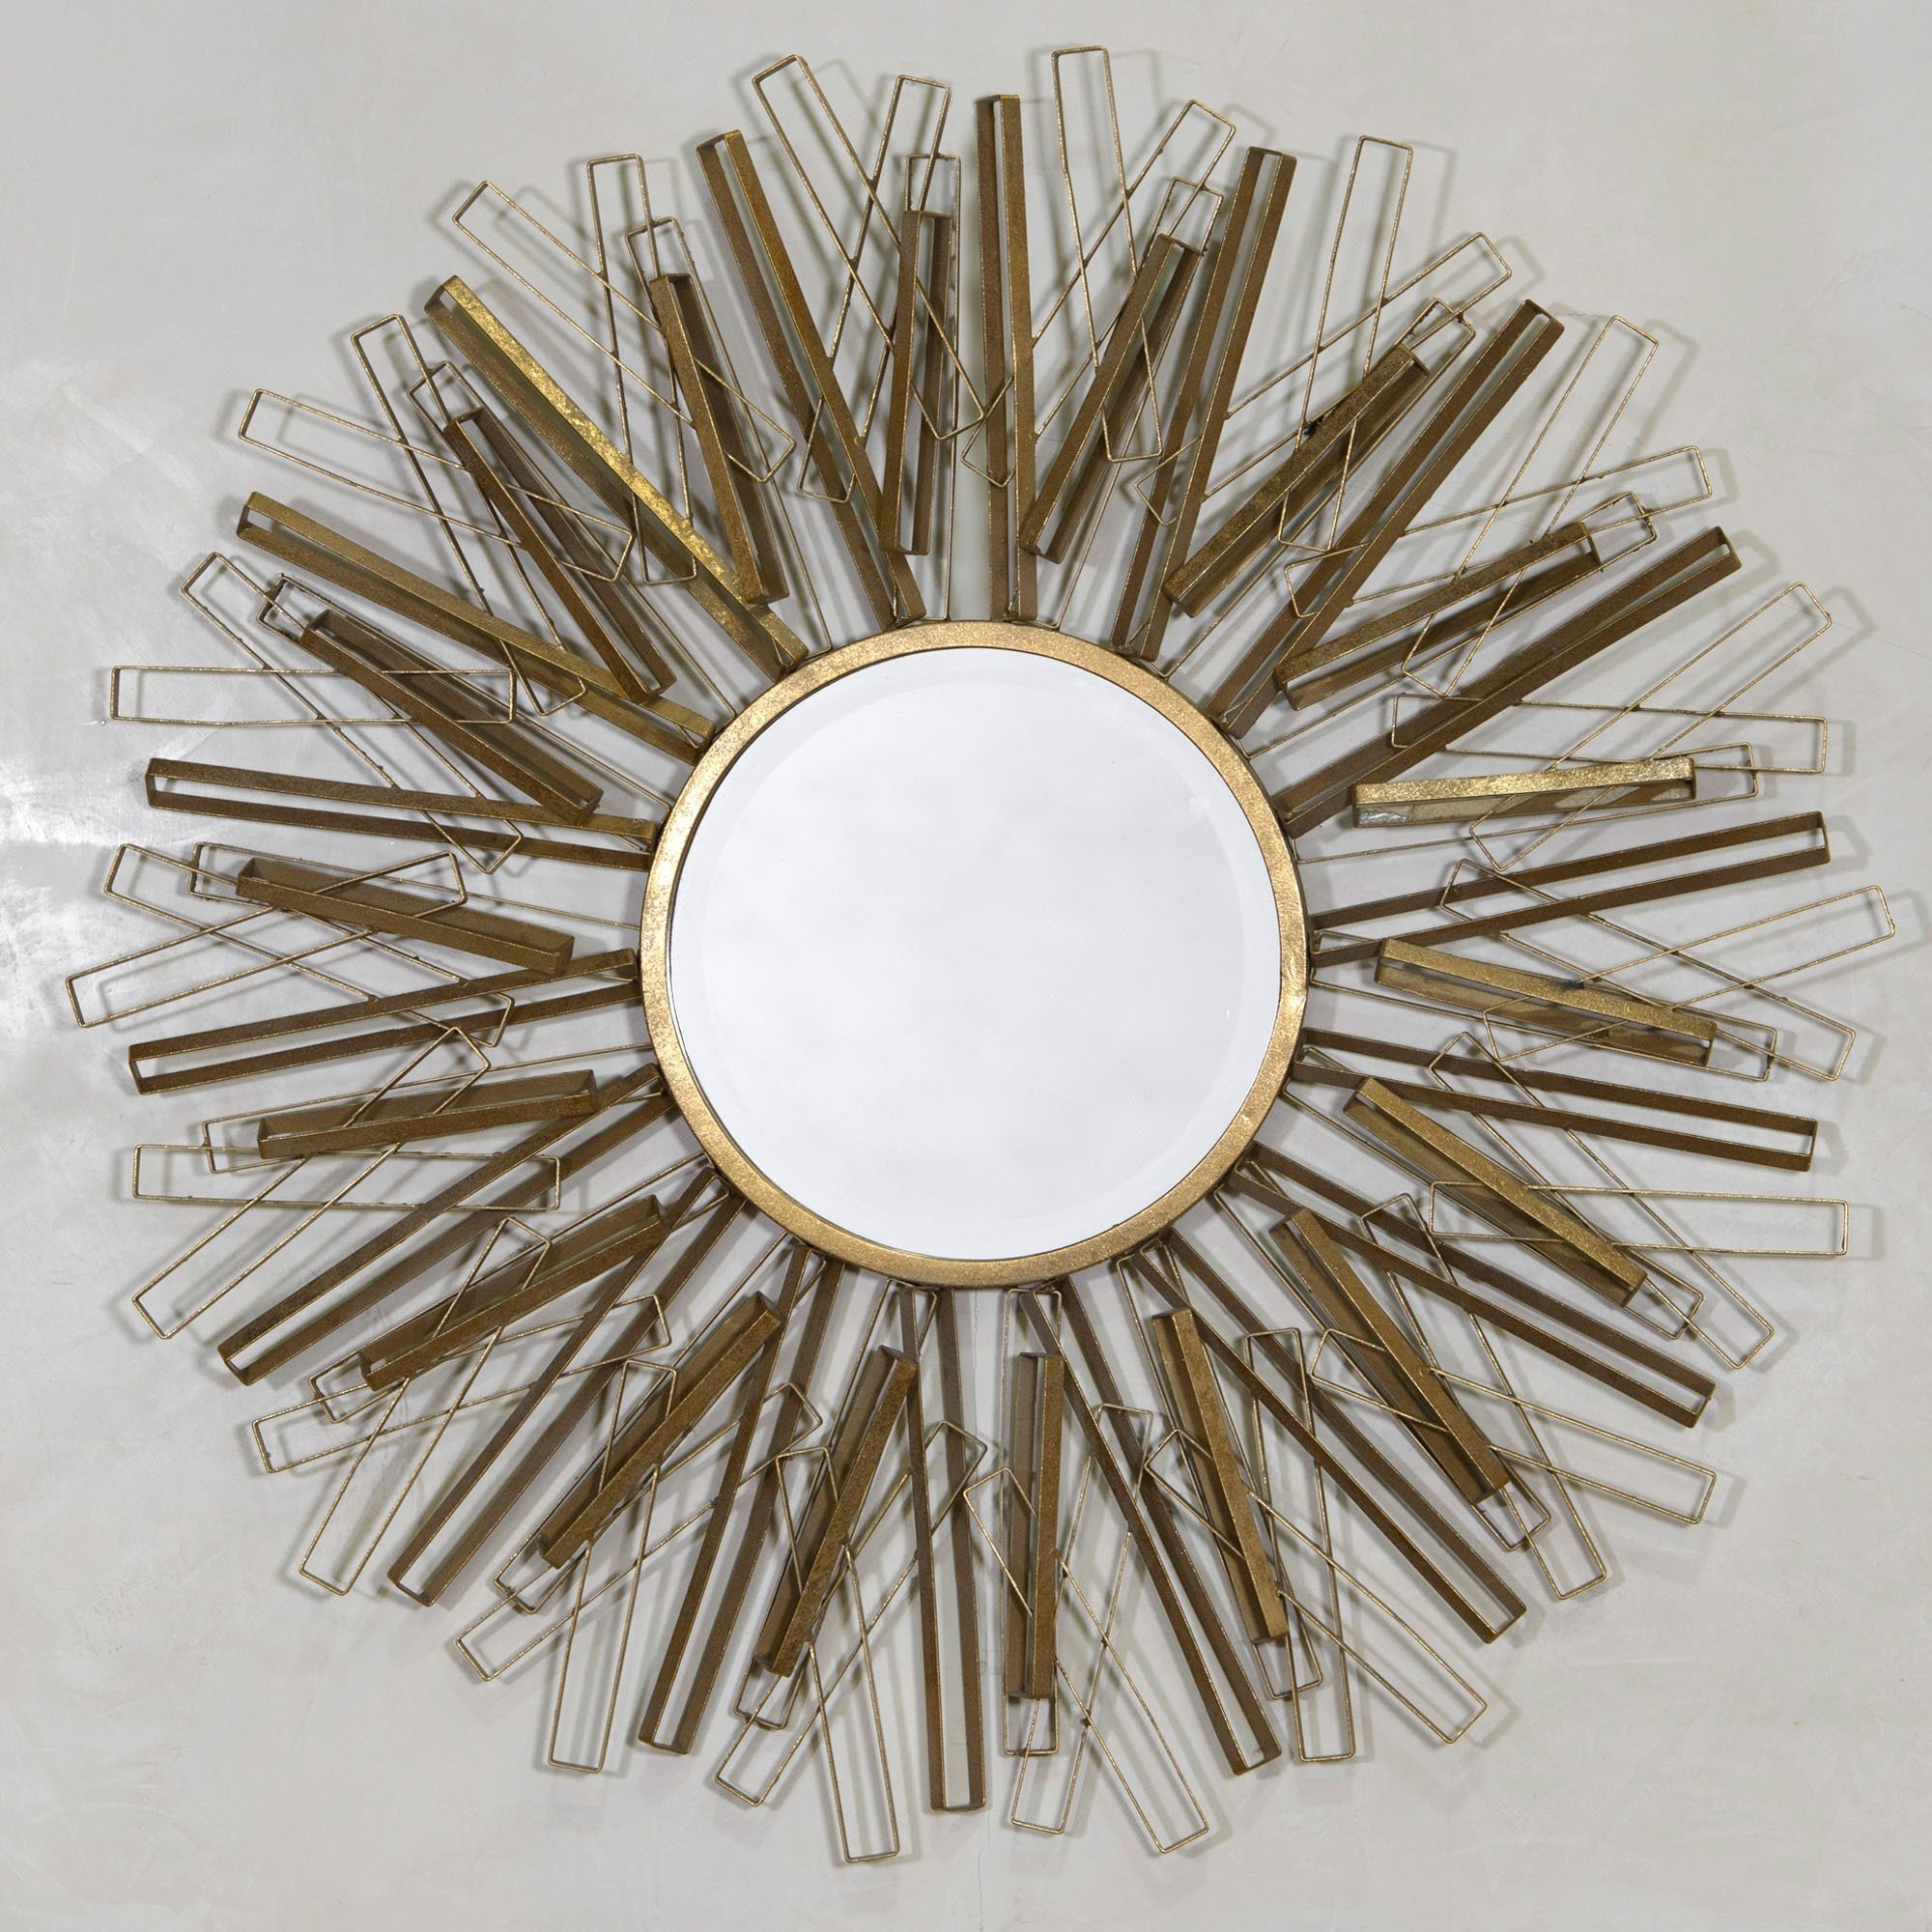 Sunburst Wall Mirrors With Regard To Most Current Antique Gold Sunburst Wall Mirror (View 19 of 20)